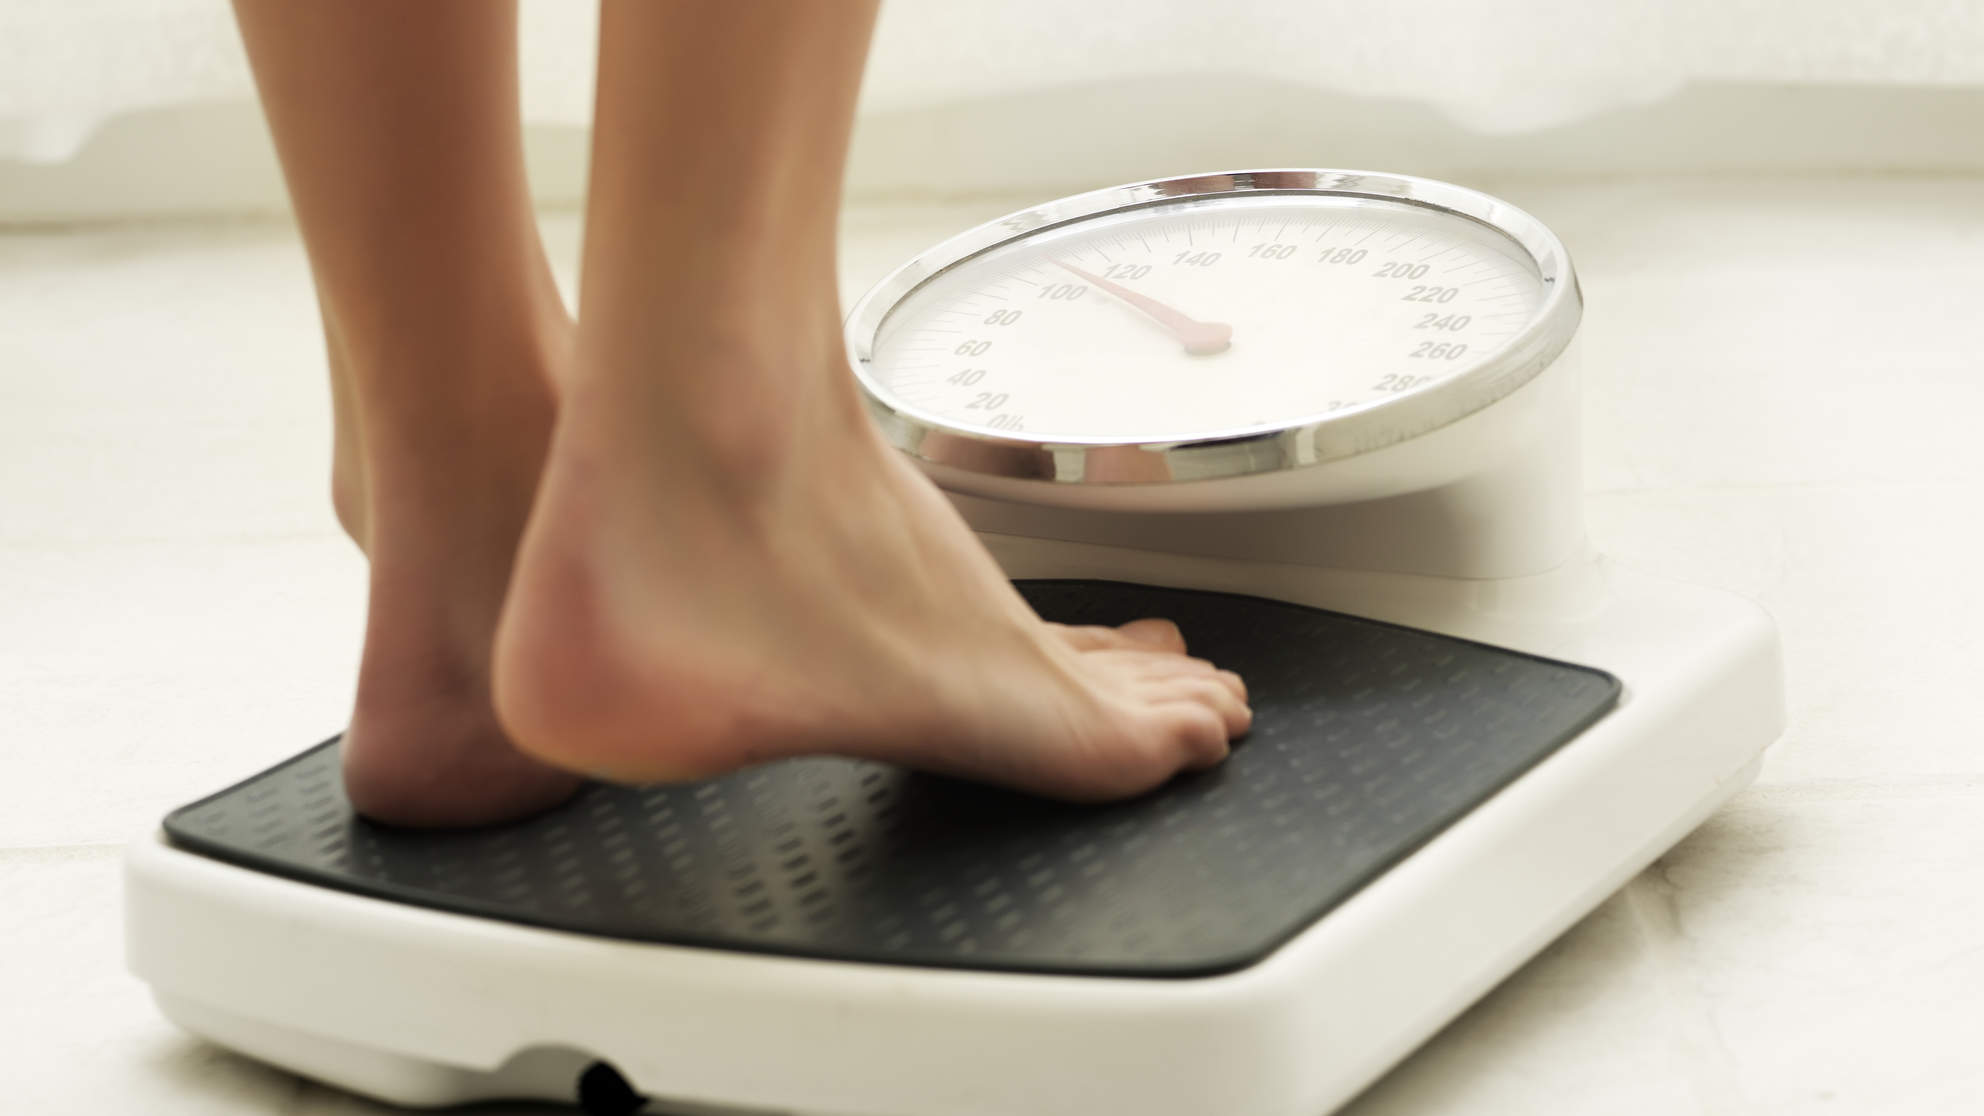 weight-gain-scale